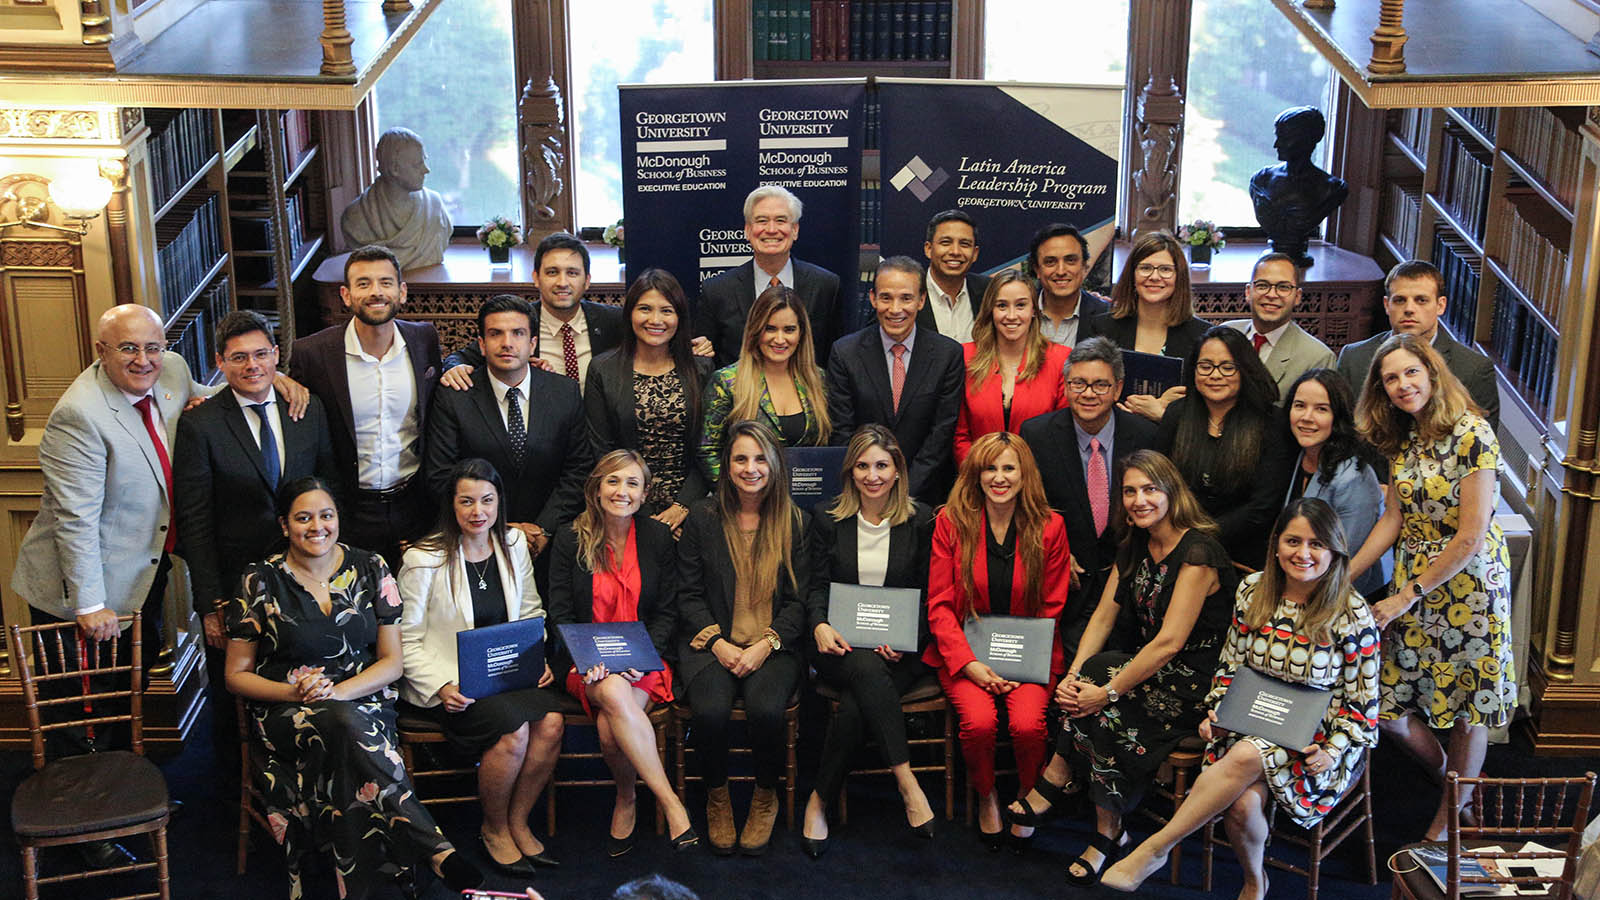 ILG 2019 cohort graduation at the Riggs Library, Georgetown University